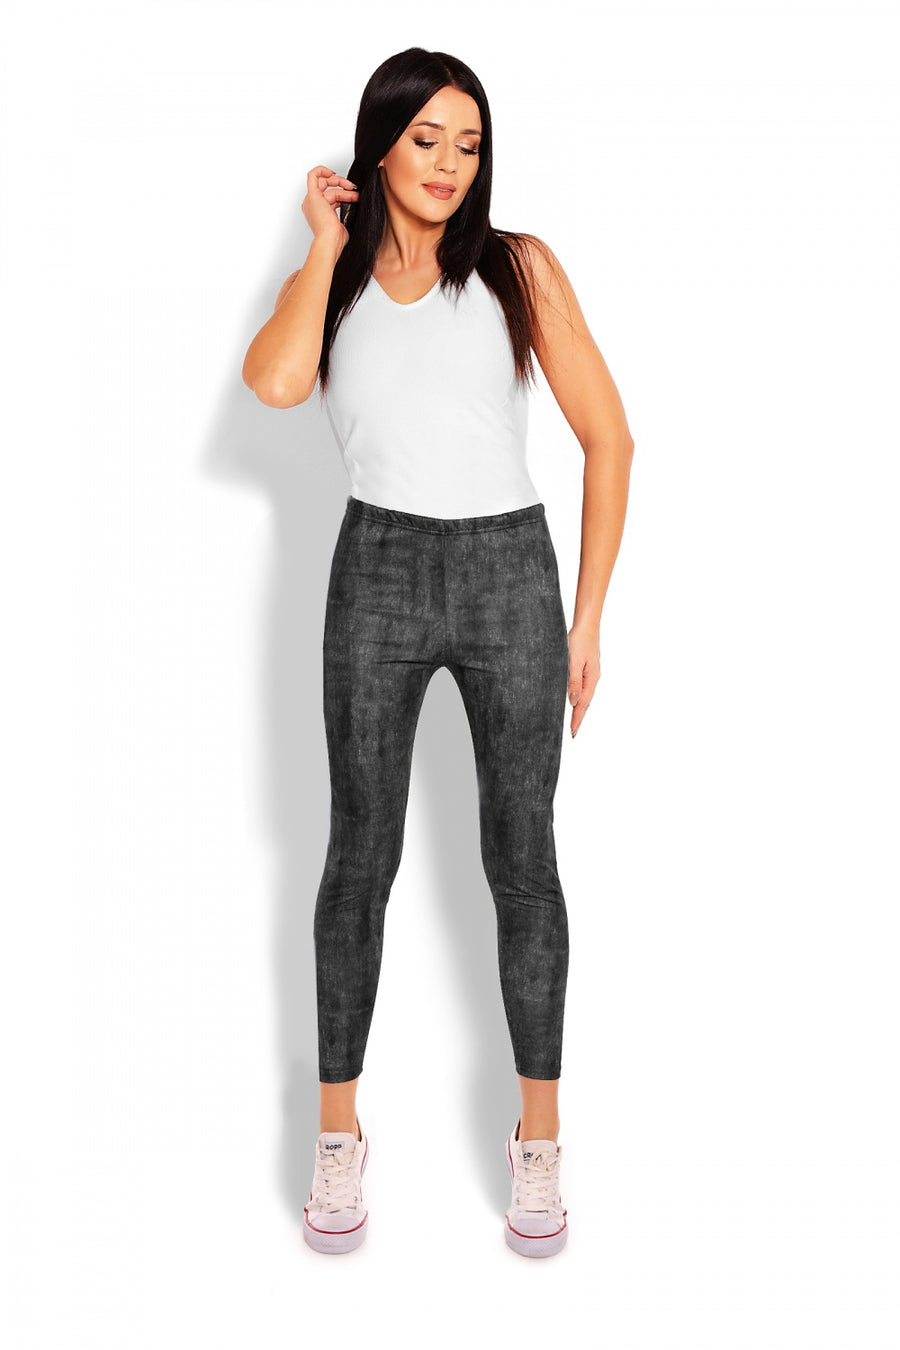 Long leggings model 125824 PeeKaBoo